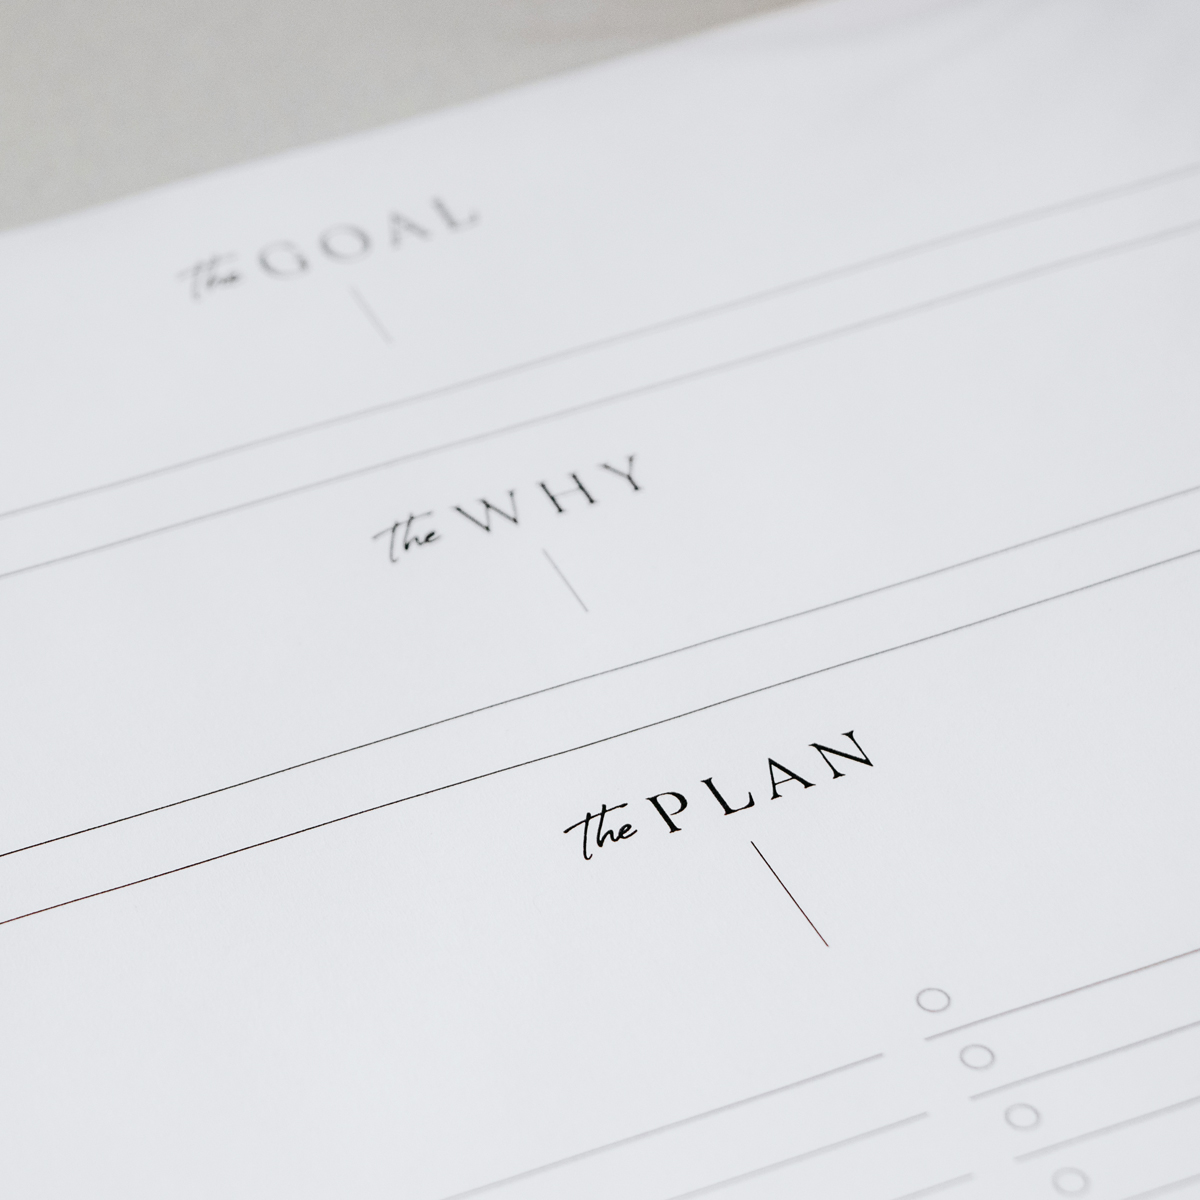 Goal Setting Worksheet Printable How To Write A Goal And